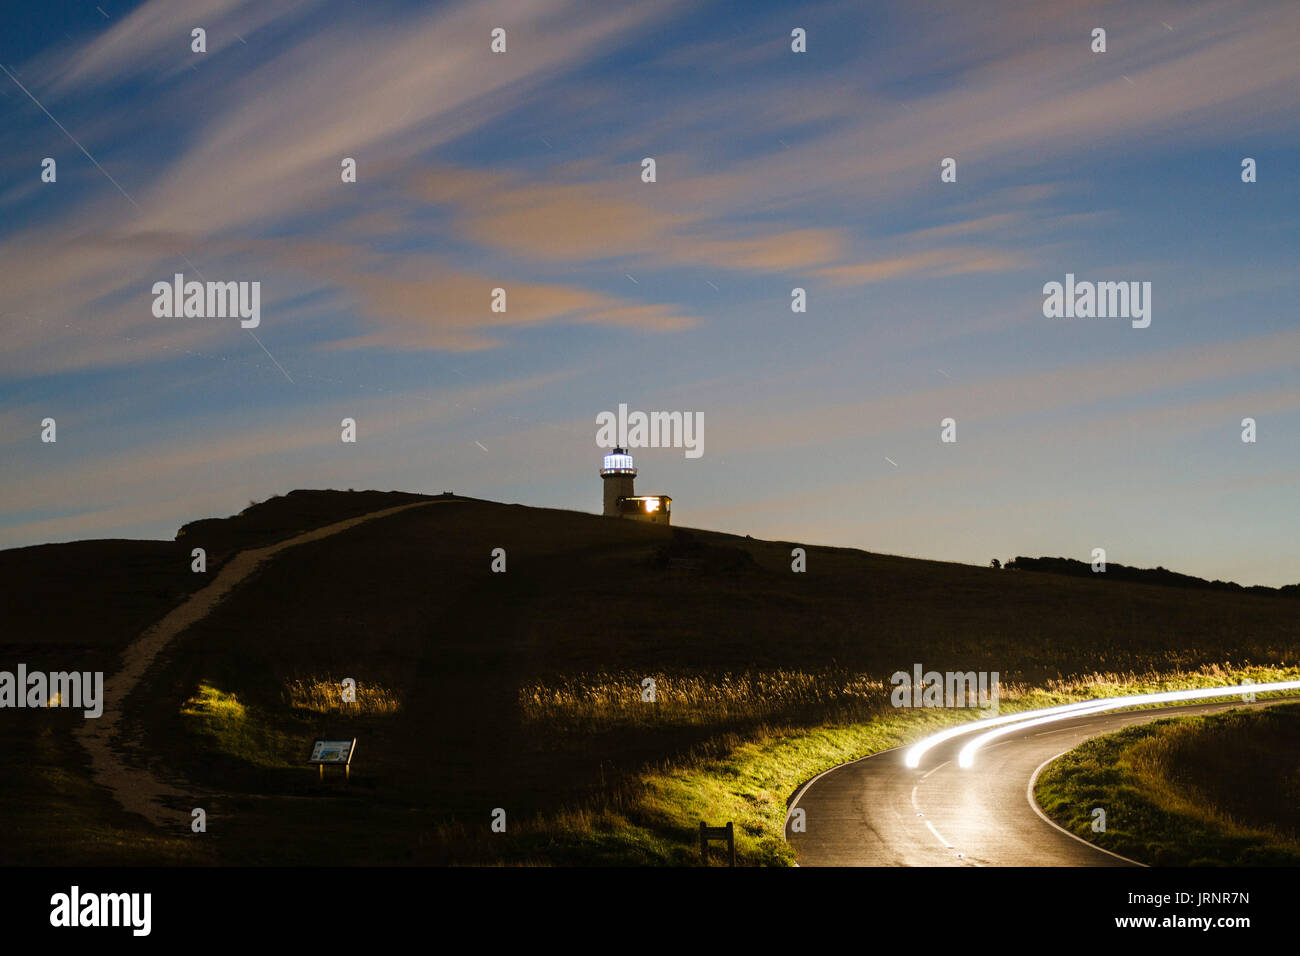 Beachy Head,UK.5th Aug 2017.UK weather. The ISS, or International space station, passes near Belle Tout lighthouse on a fine evening in East Sussex,UK Credit: Ed Brown/Alamy Live News - Stock Image